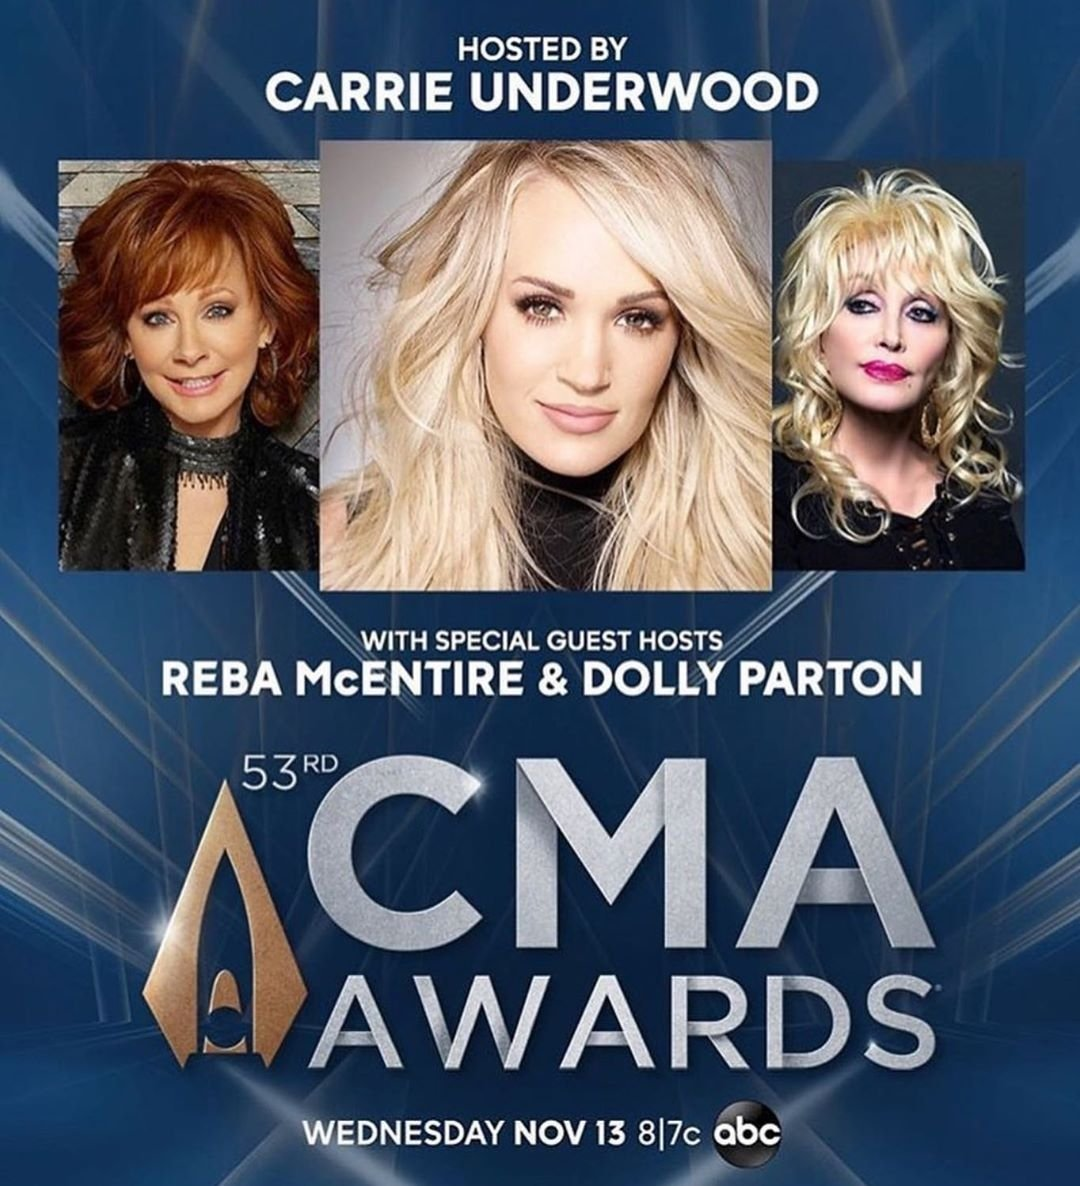 I'm so excited for @carrieunderwood to be hosting this year #CMA with @reba & @DollyParton but also sad that @BradPaisley isn't hosting this with Carrie!! <br>http://pic.twitter.com/4f3ubJHCQC